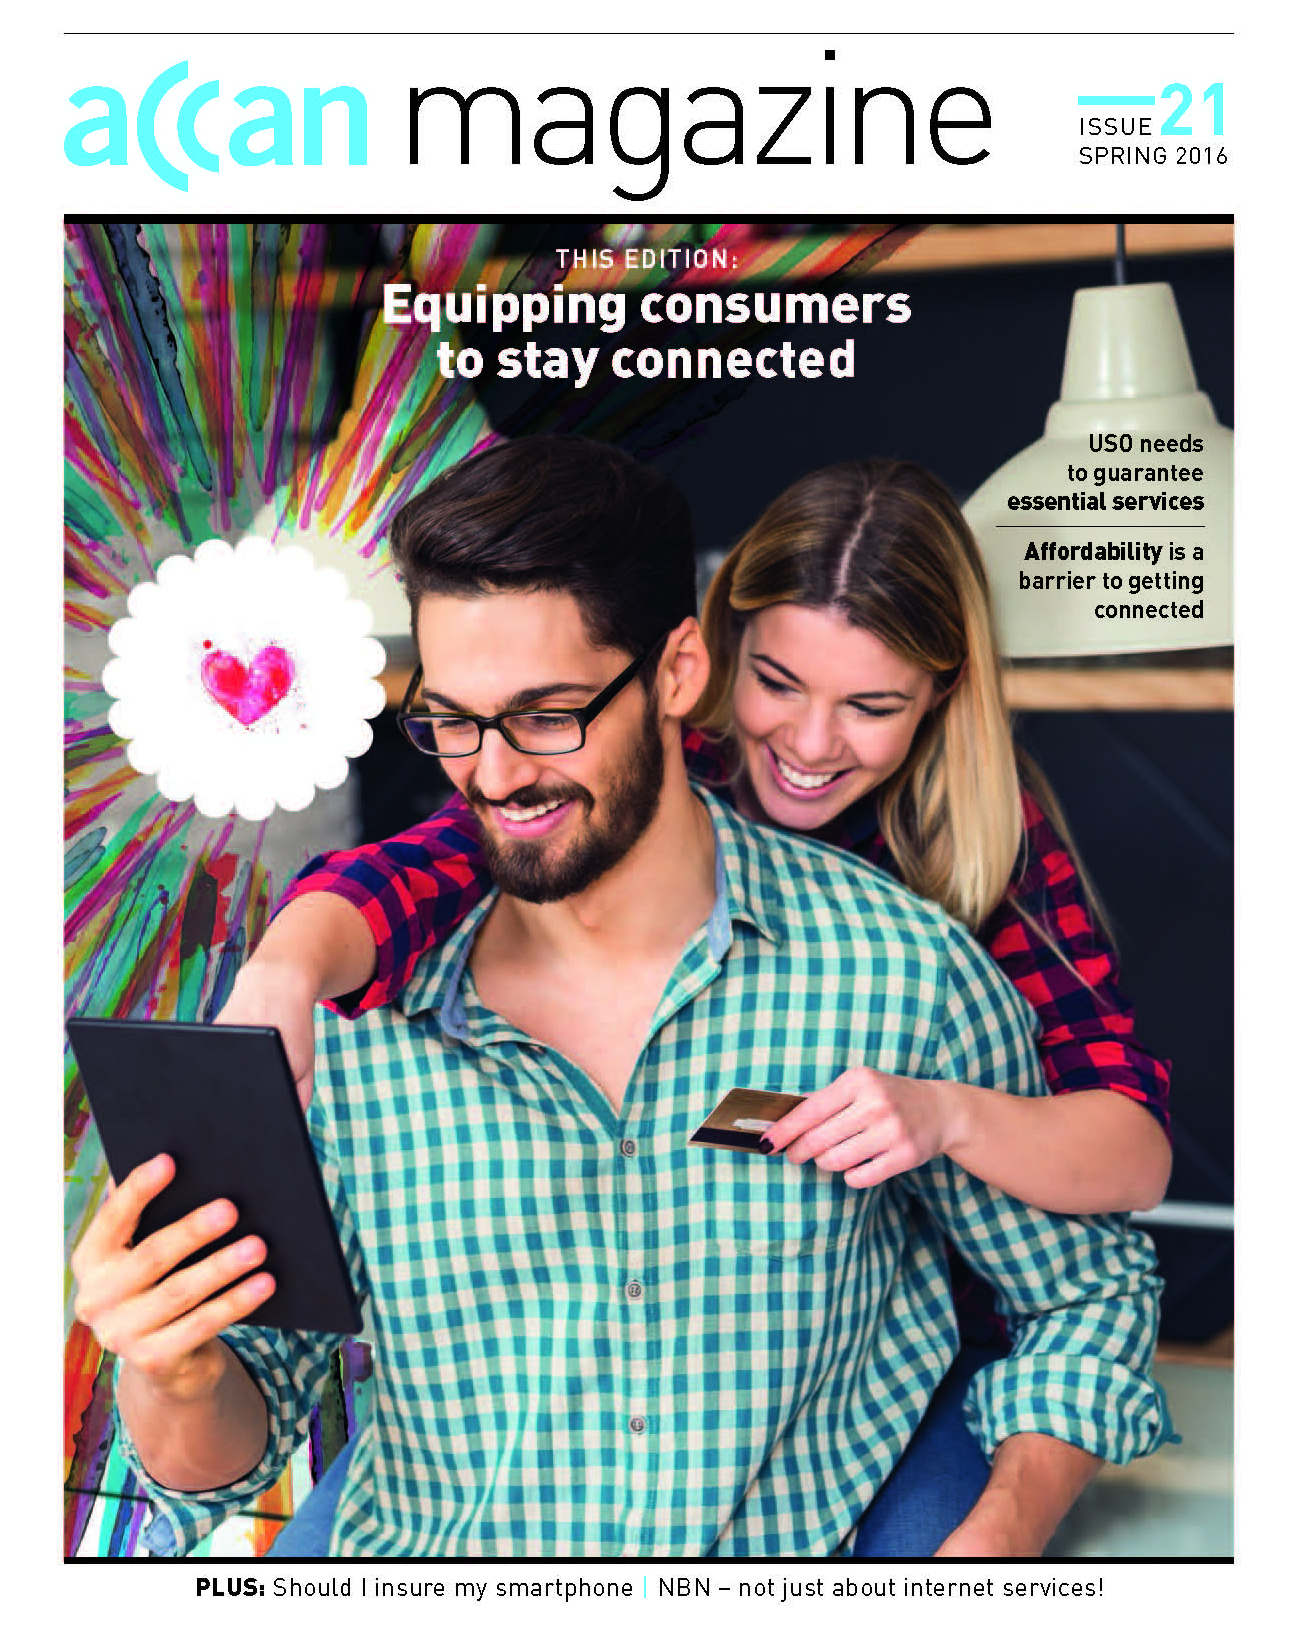 Equipping consumers to stay connected magazine cover